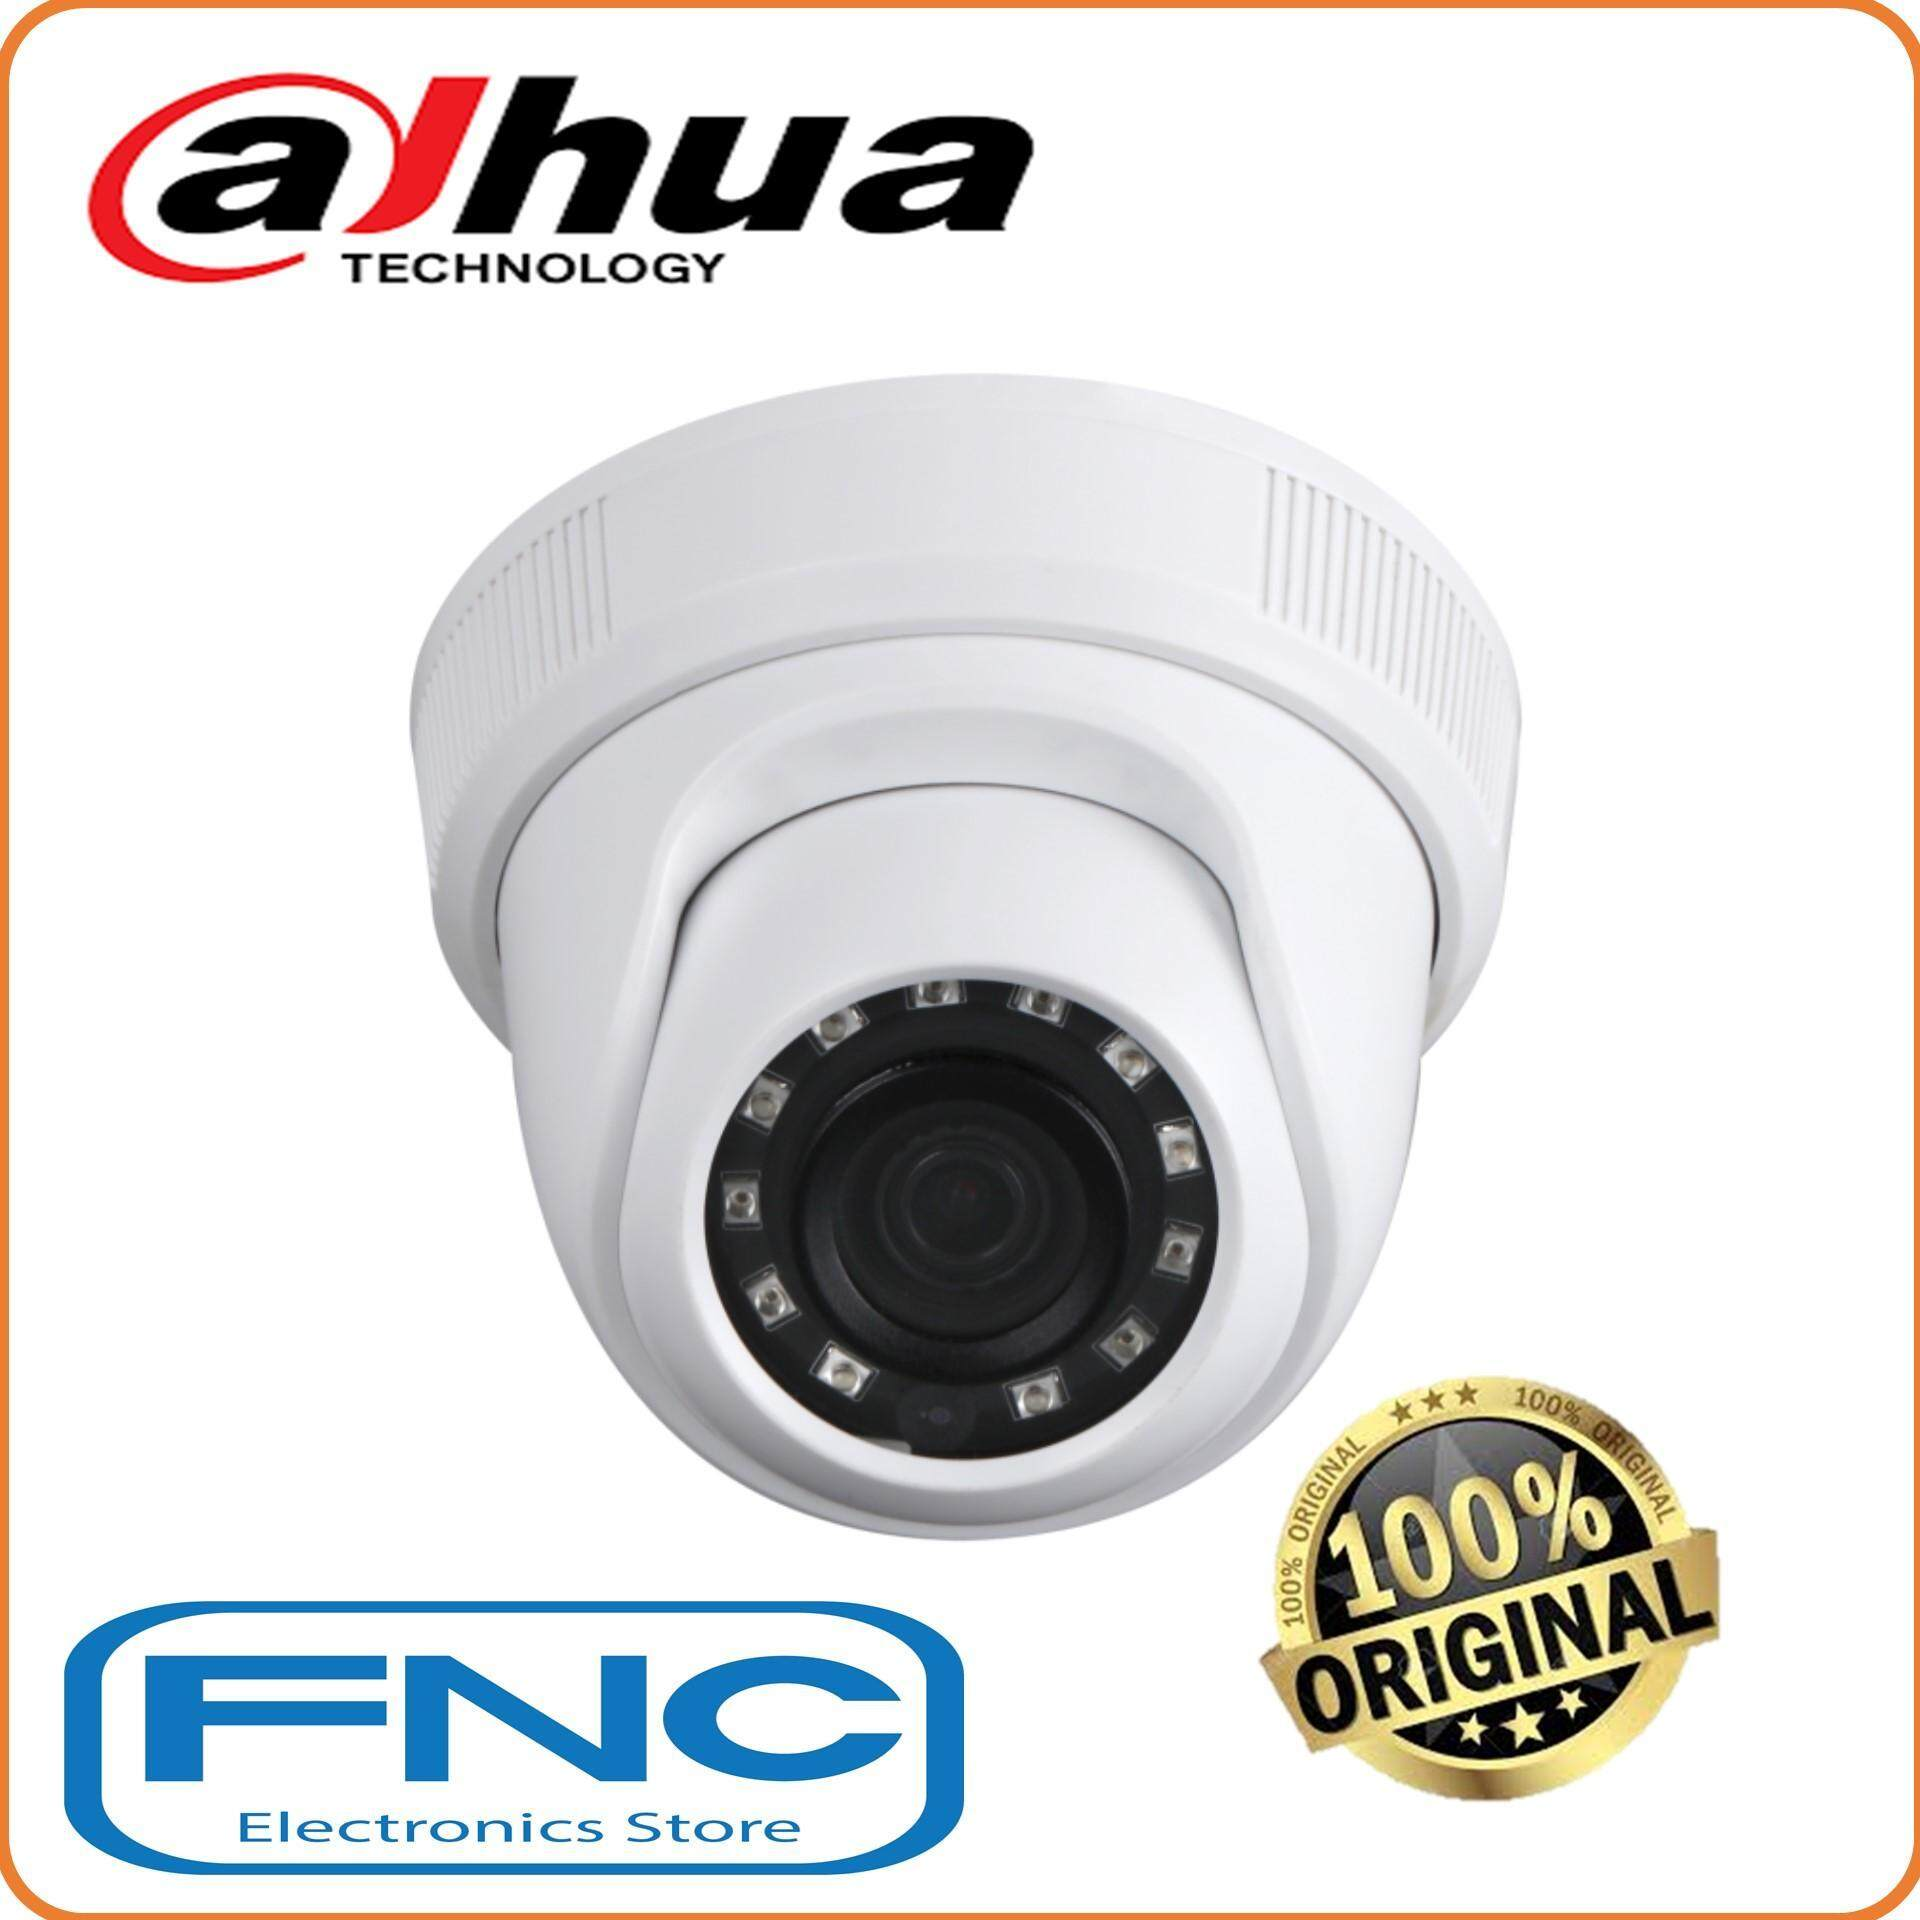 Dahua Hac-Hdw1200c Analog 2mp 1080p Fixed 2.8mm Lens Hdcvi 4 In 1 Ir Eyeball Dome Camera By Fnc Electronics Store.